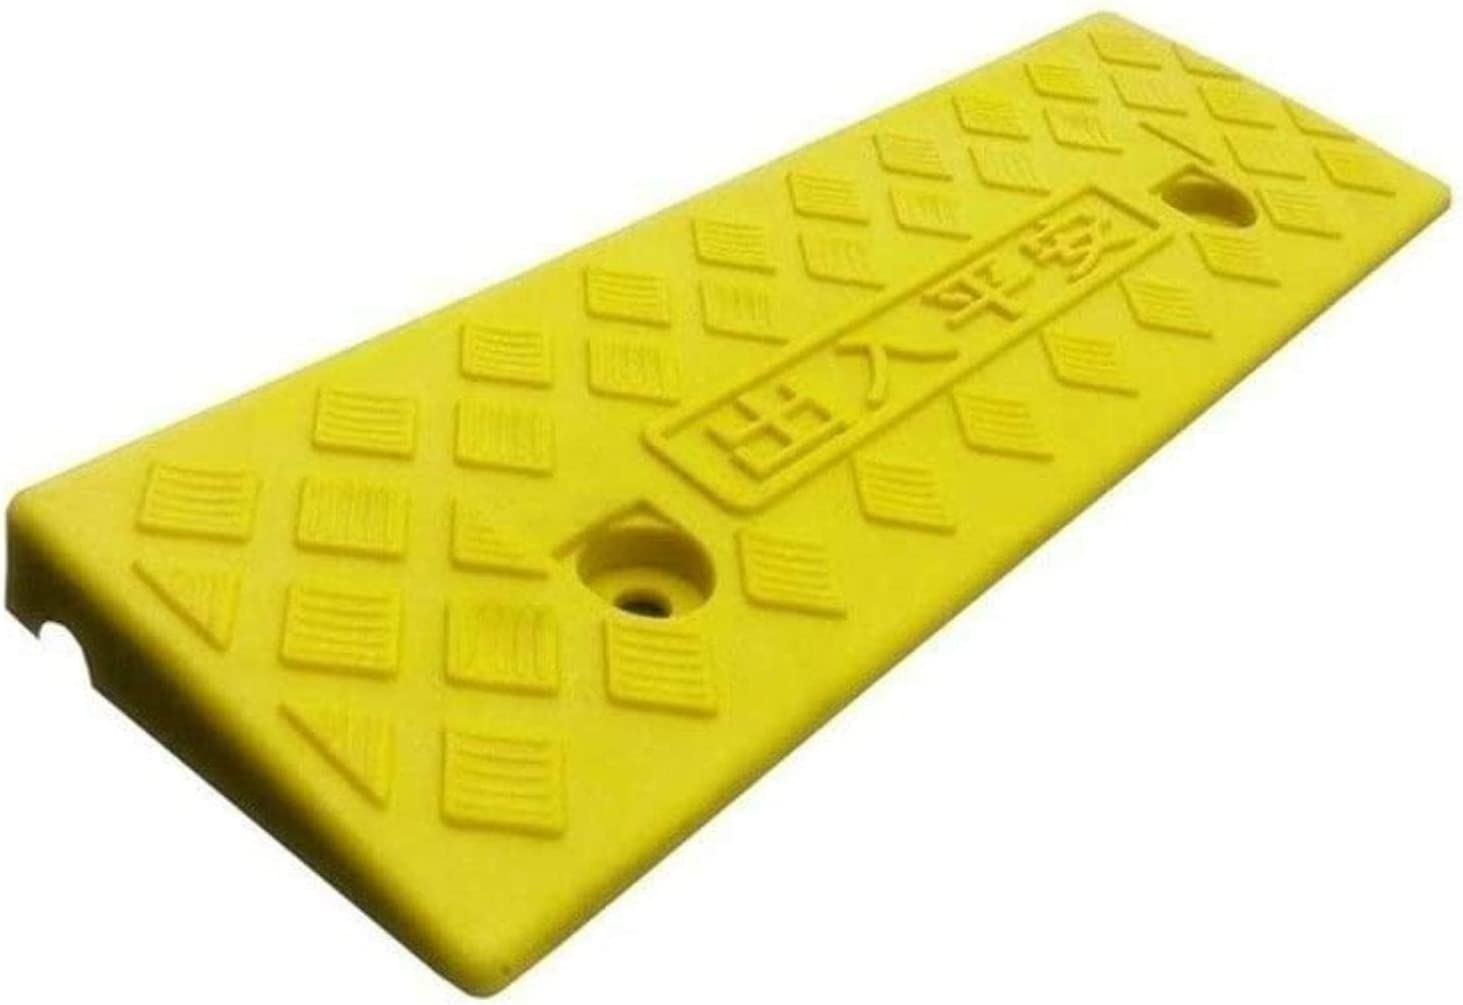 LQX Ramps Indoor Slope Pad Home Wheelchair Handicapped Mail Phoenix Mall order Ra